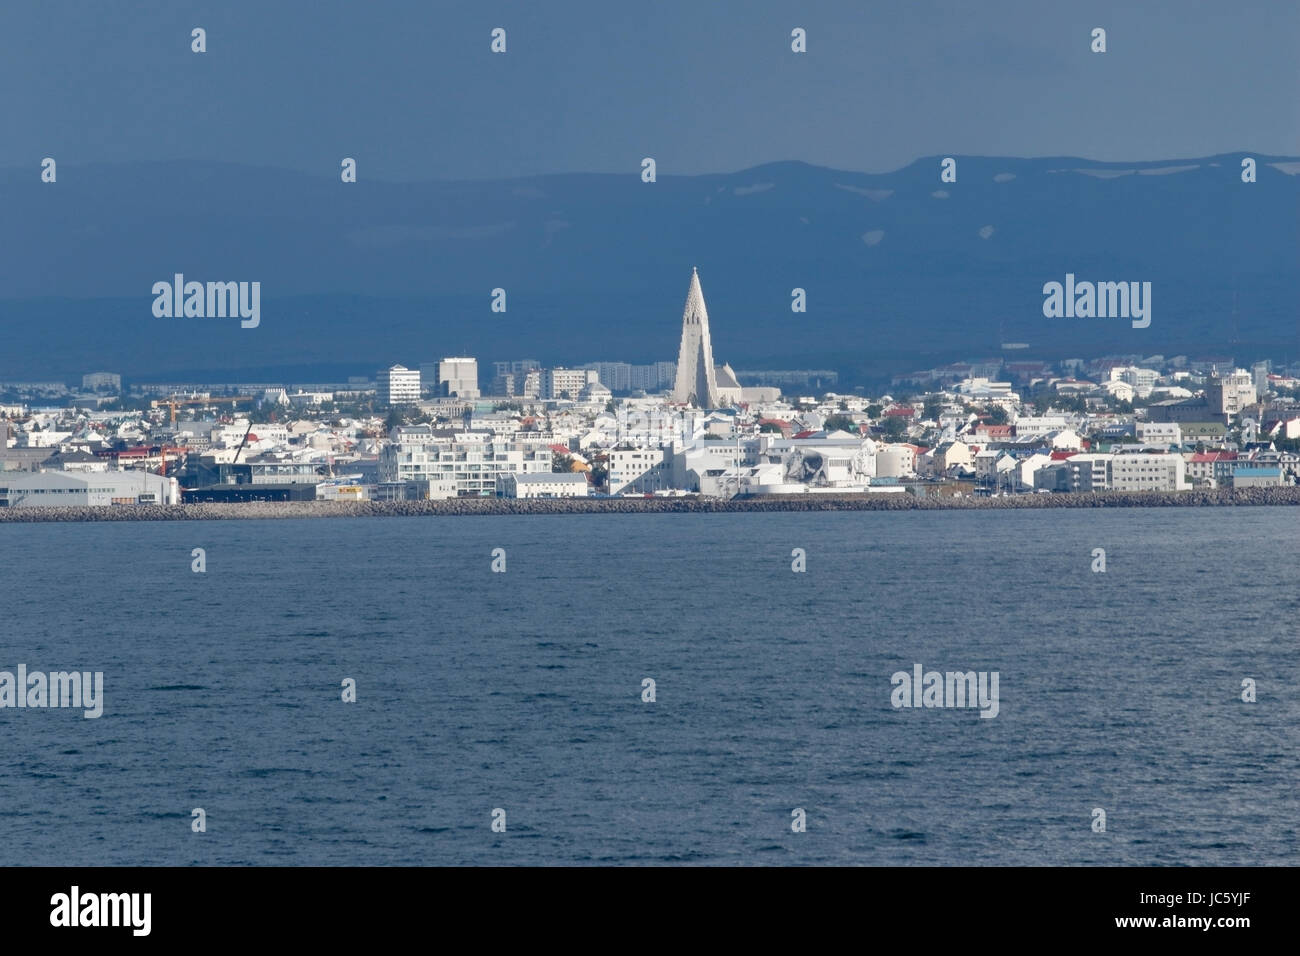 view of Reykjavik city, Iceland, from the sea, showing the cathedral in the distance - Stock Image